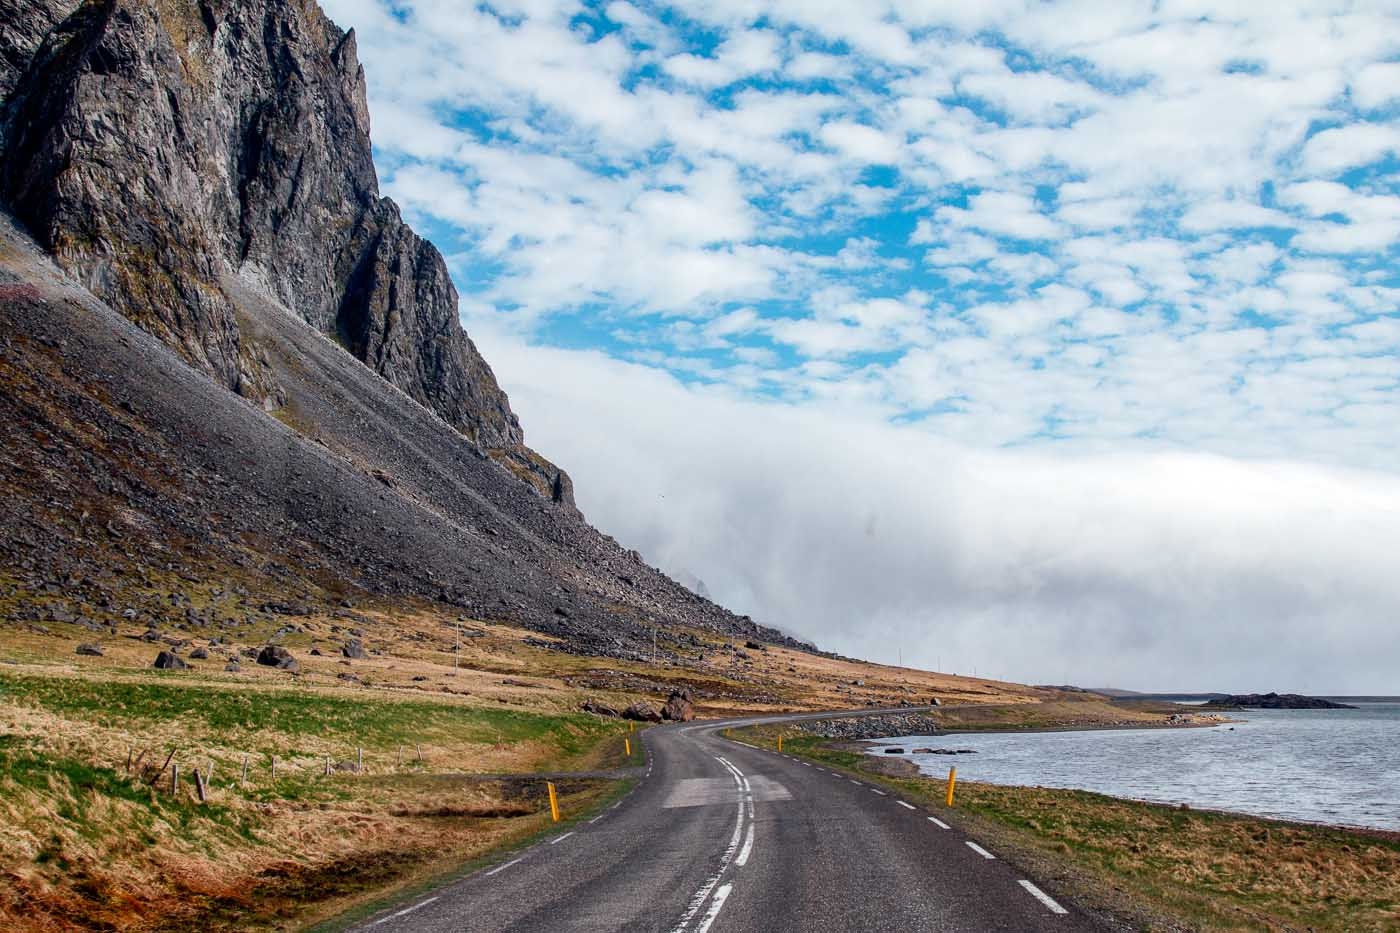 An empty road in Iceland. There are black mountains on the left and the ocean on the right.